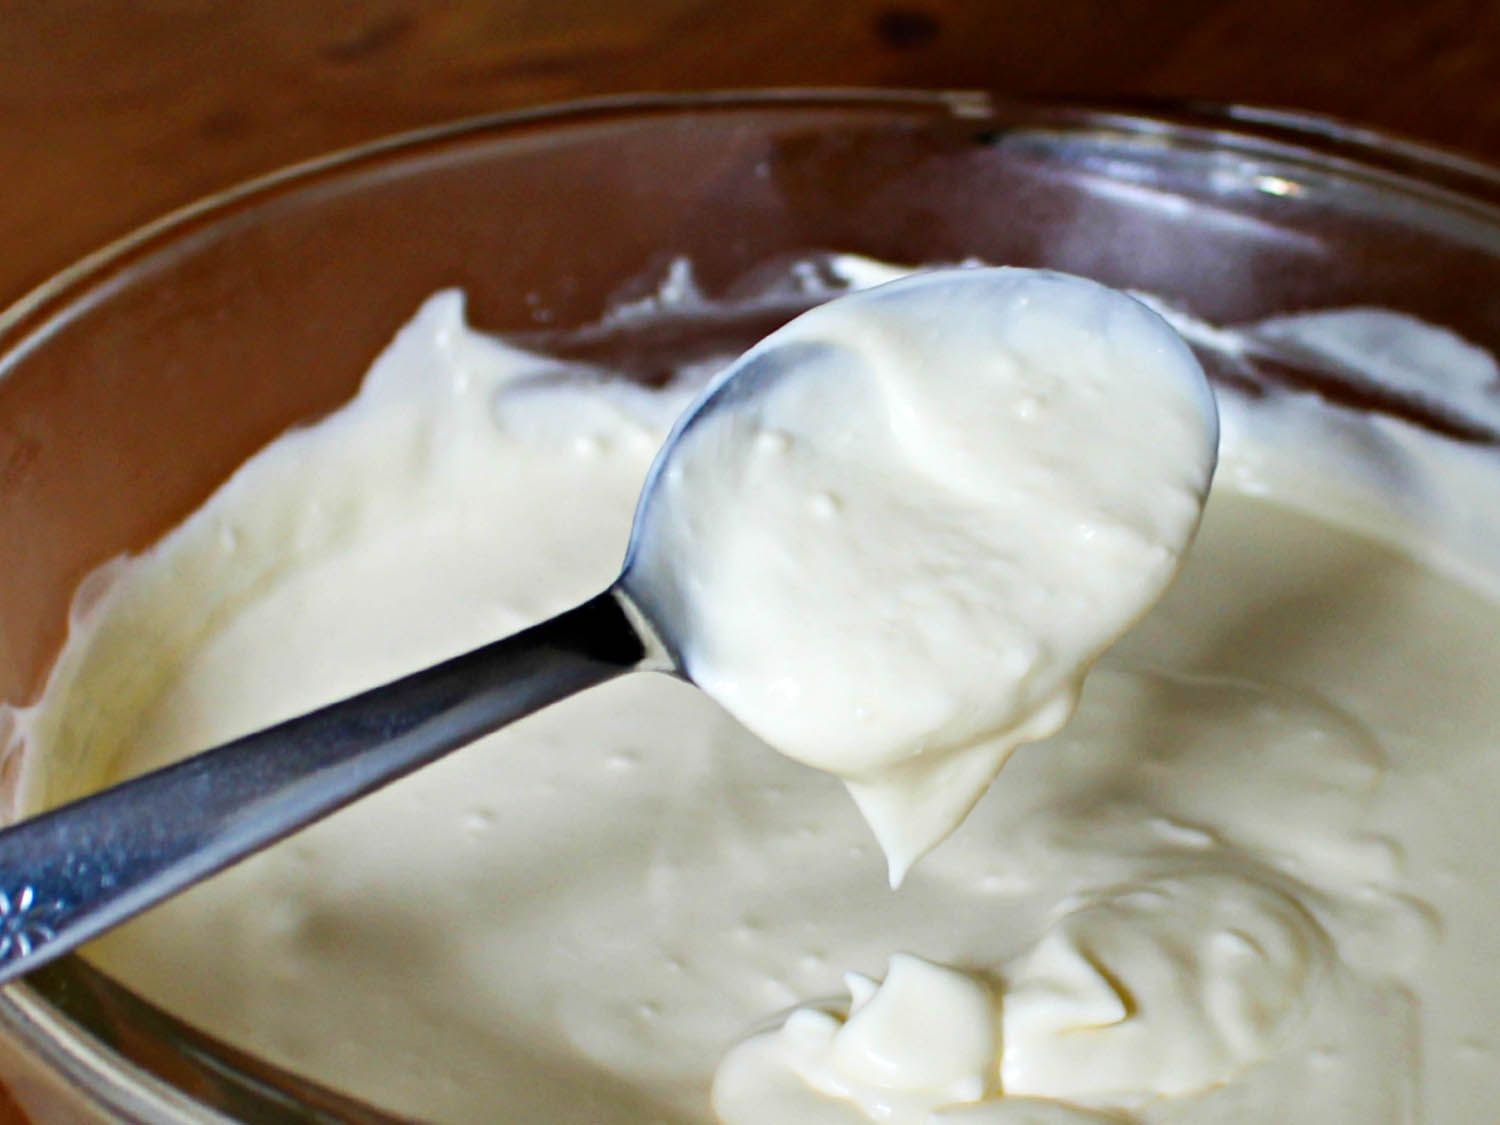 20140714-cream-science-what-happens-when-you-whip-it-claire-lower-pasteurized-batch.jpg